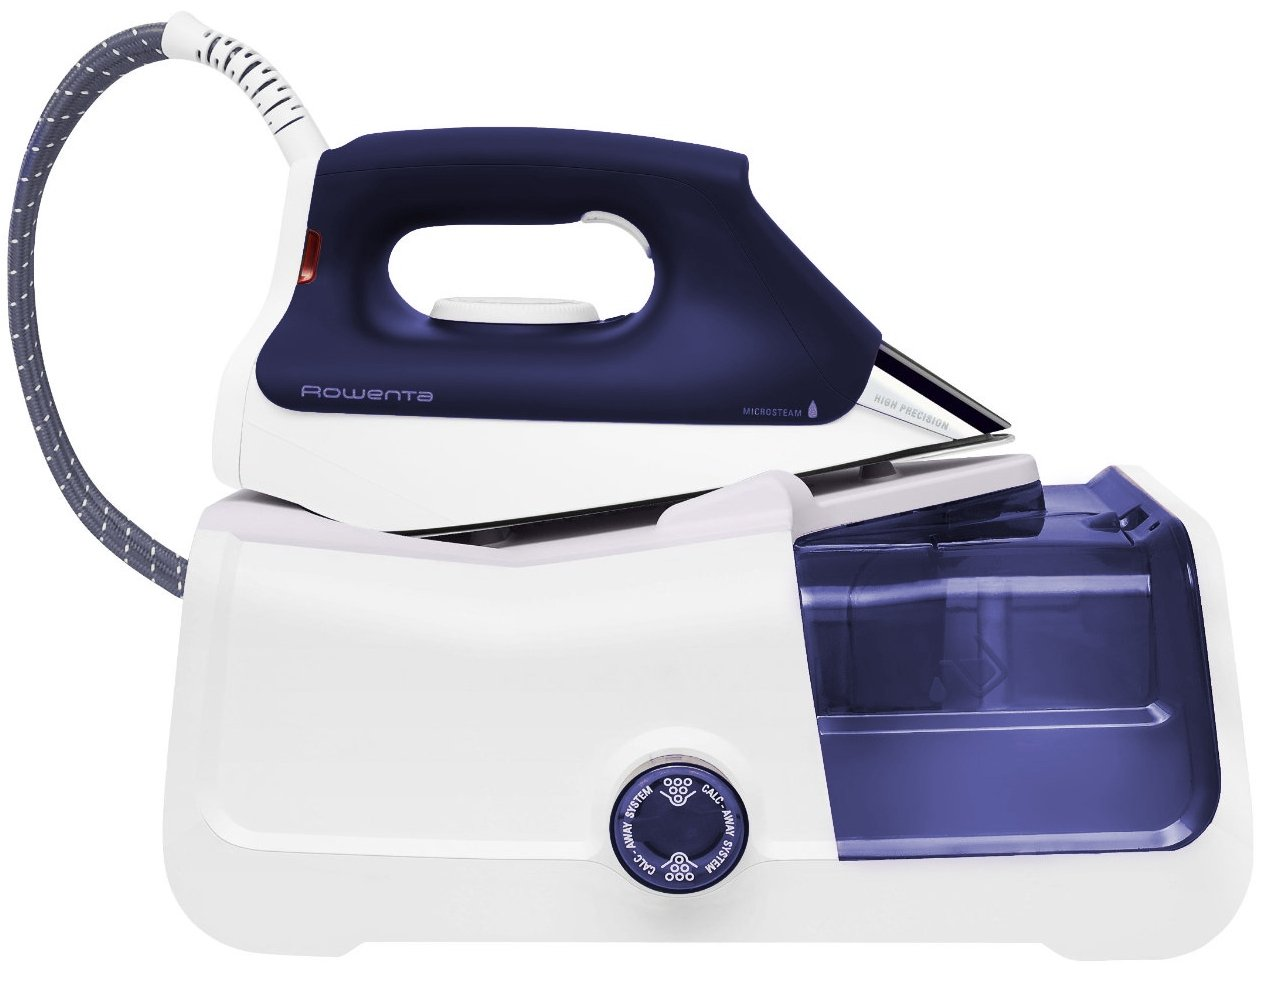 Rowenta DG84 Pro Precision: A garment steamer for smooth and continuous steam